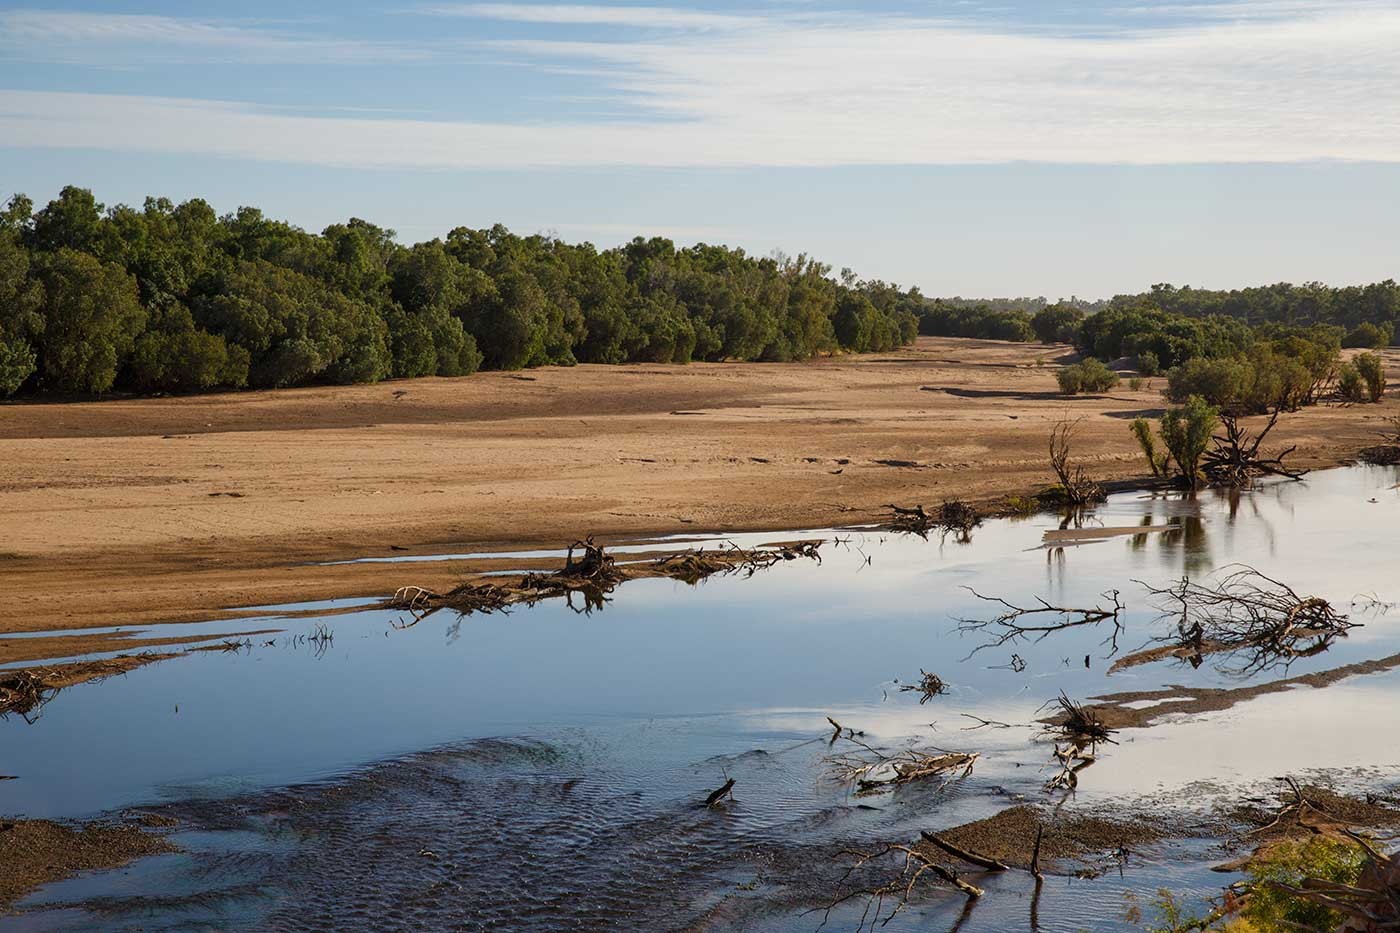 Colour photograph of a small, low river with sandy flats extending to a tree-lined bank. - click to view larger image